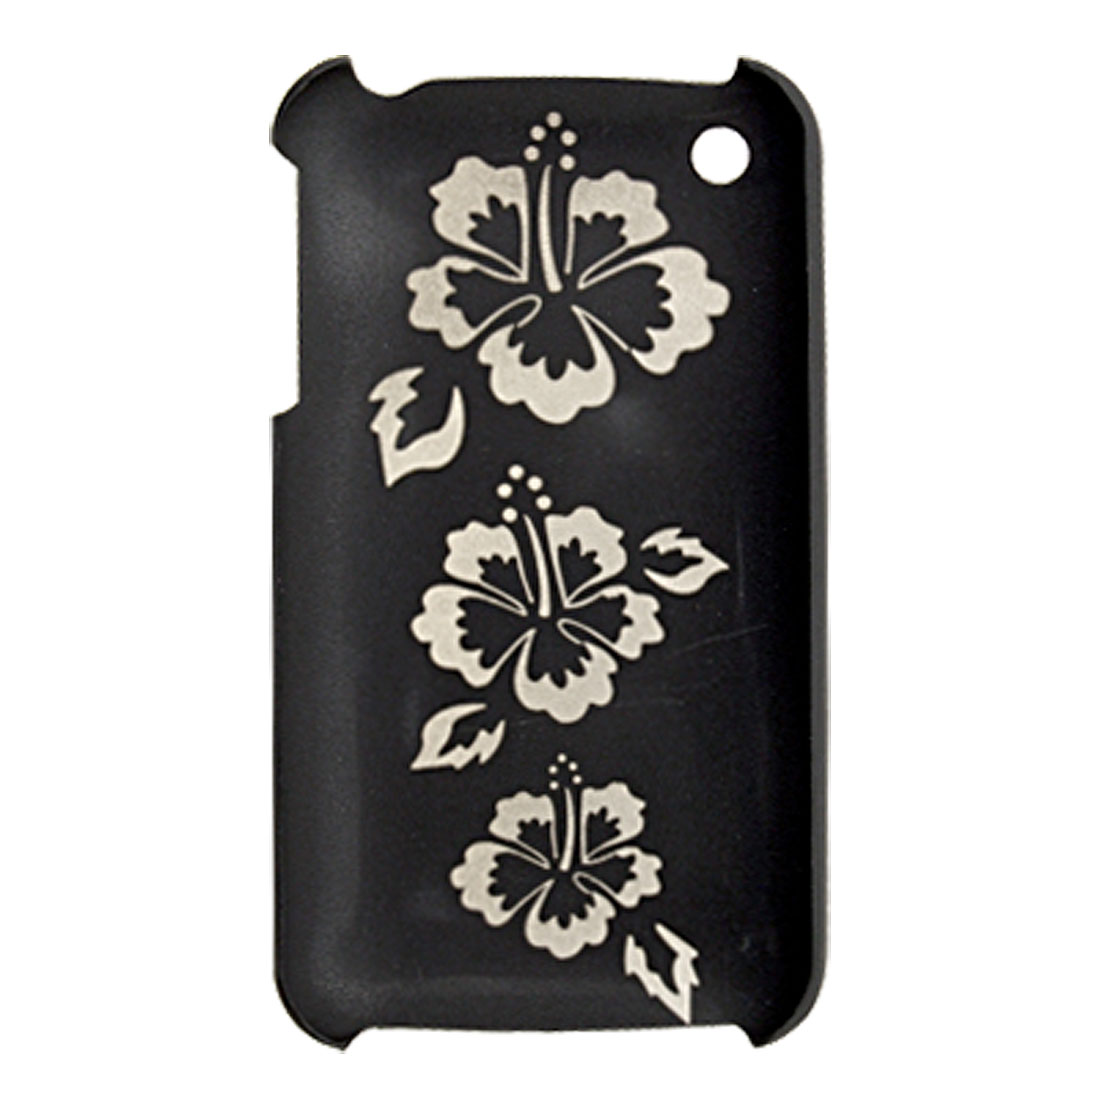 Unique Flower Pattern Hard Plastic Back Case for iPhone 3G / 3GS Black